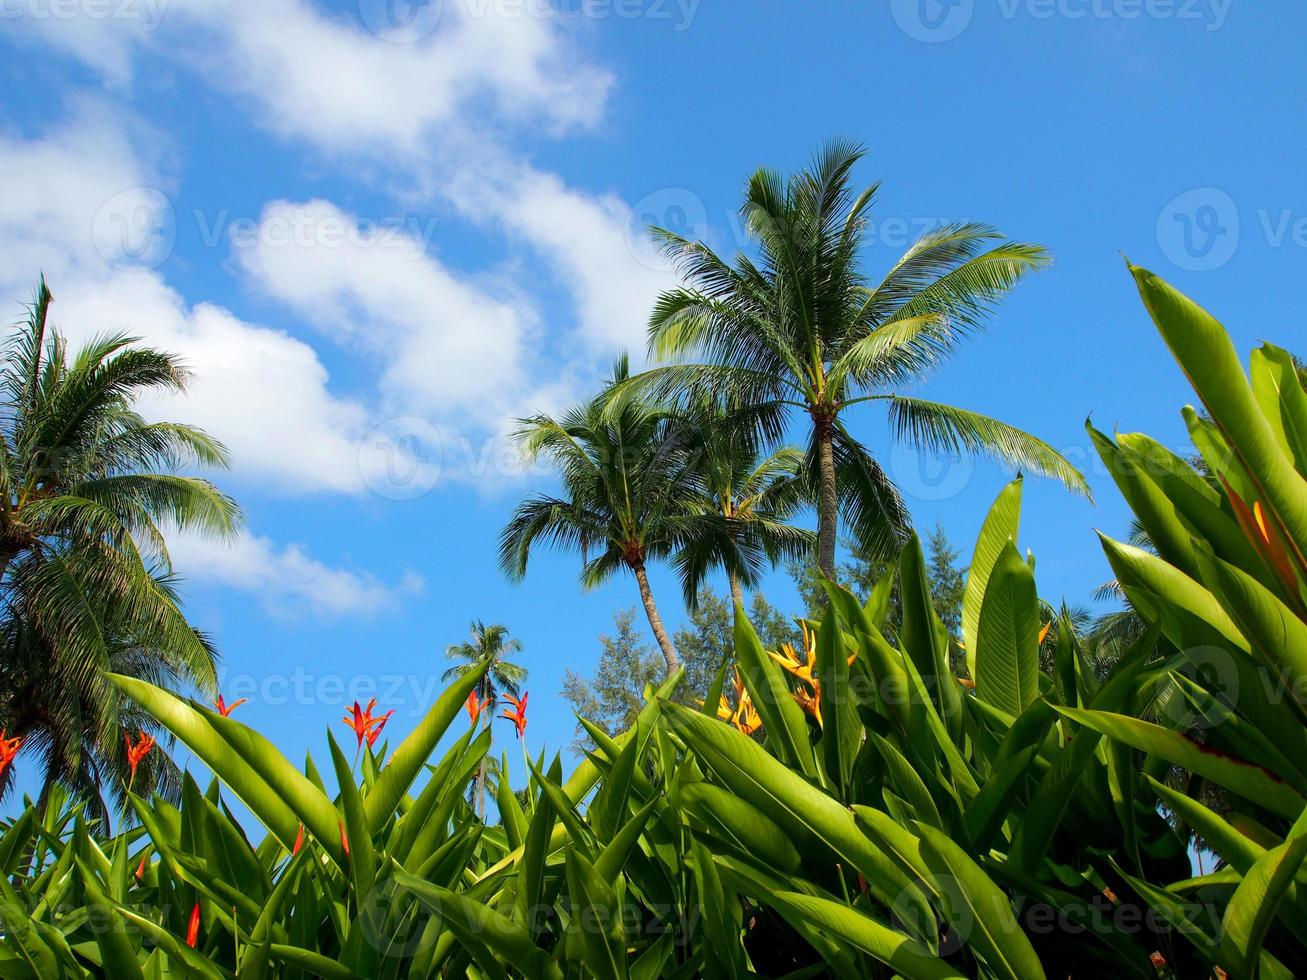 Lush greenery and tropical weather photo